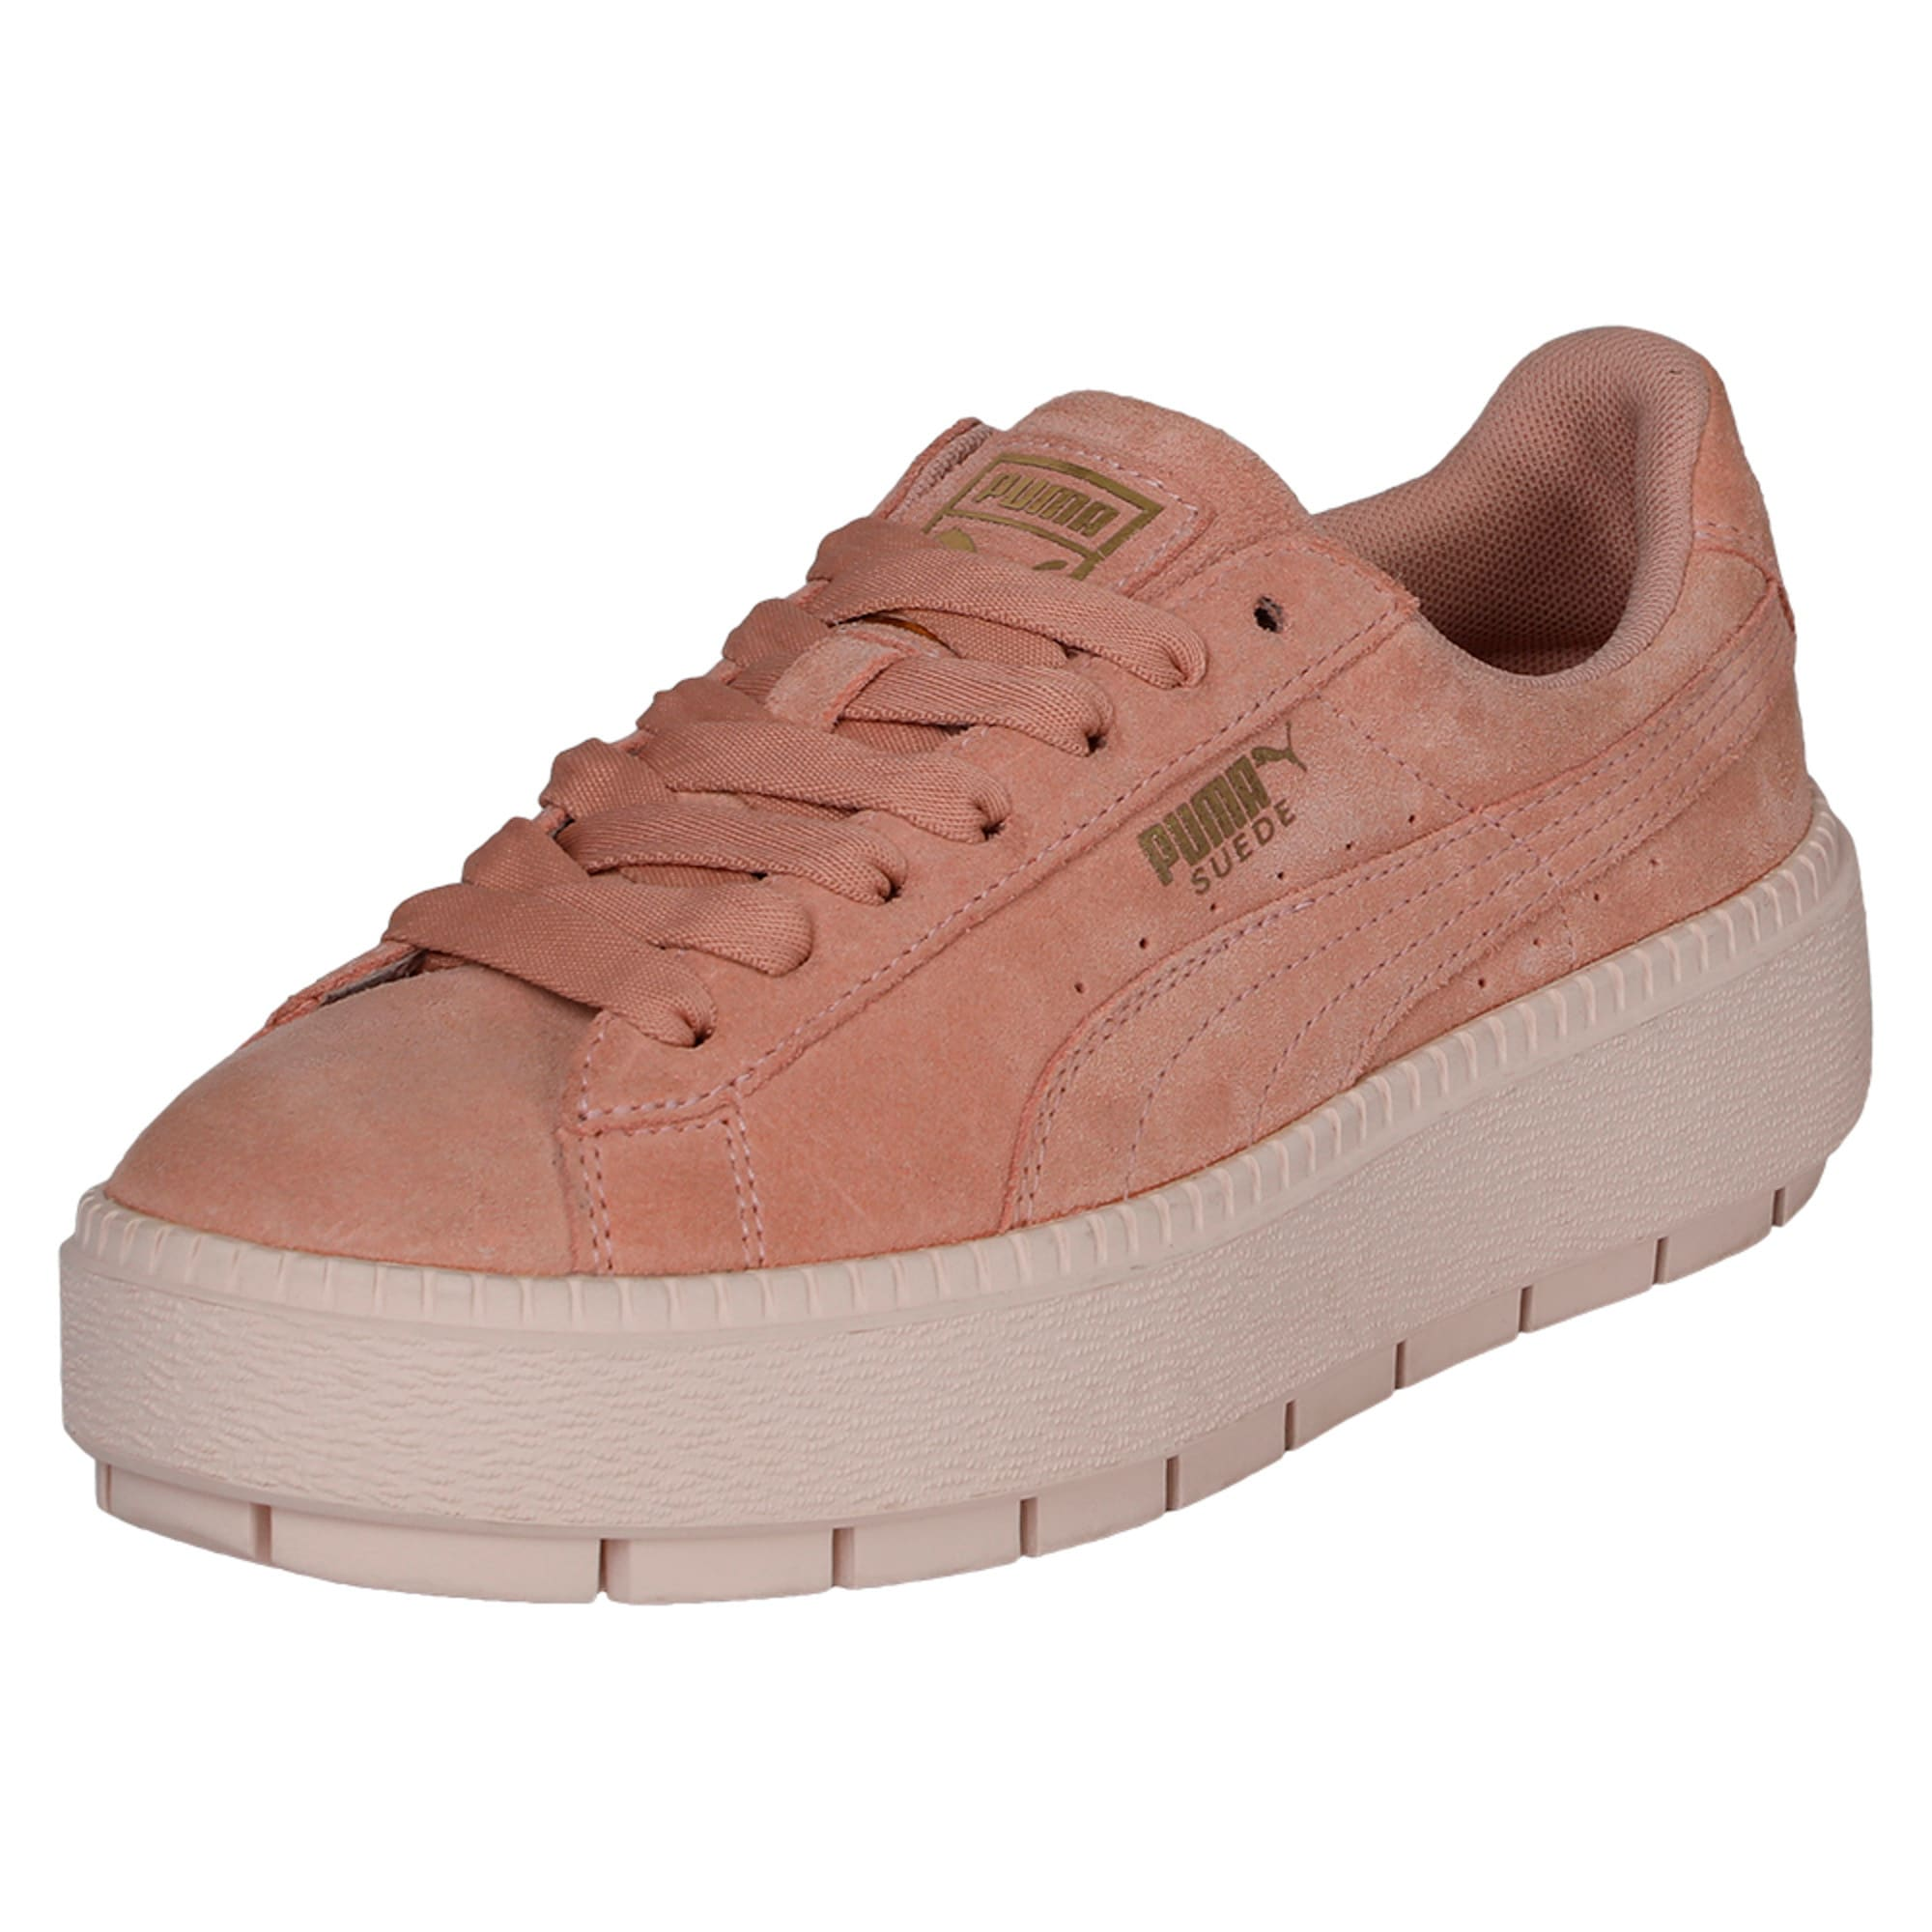 Thumbnail 1 of Platform Trace Women's Trainers, Peach Beige-Pearl, medium-IND